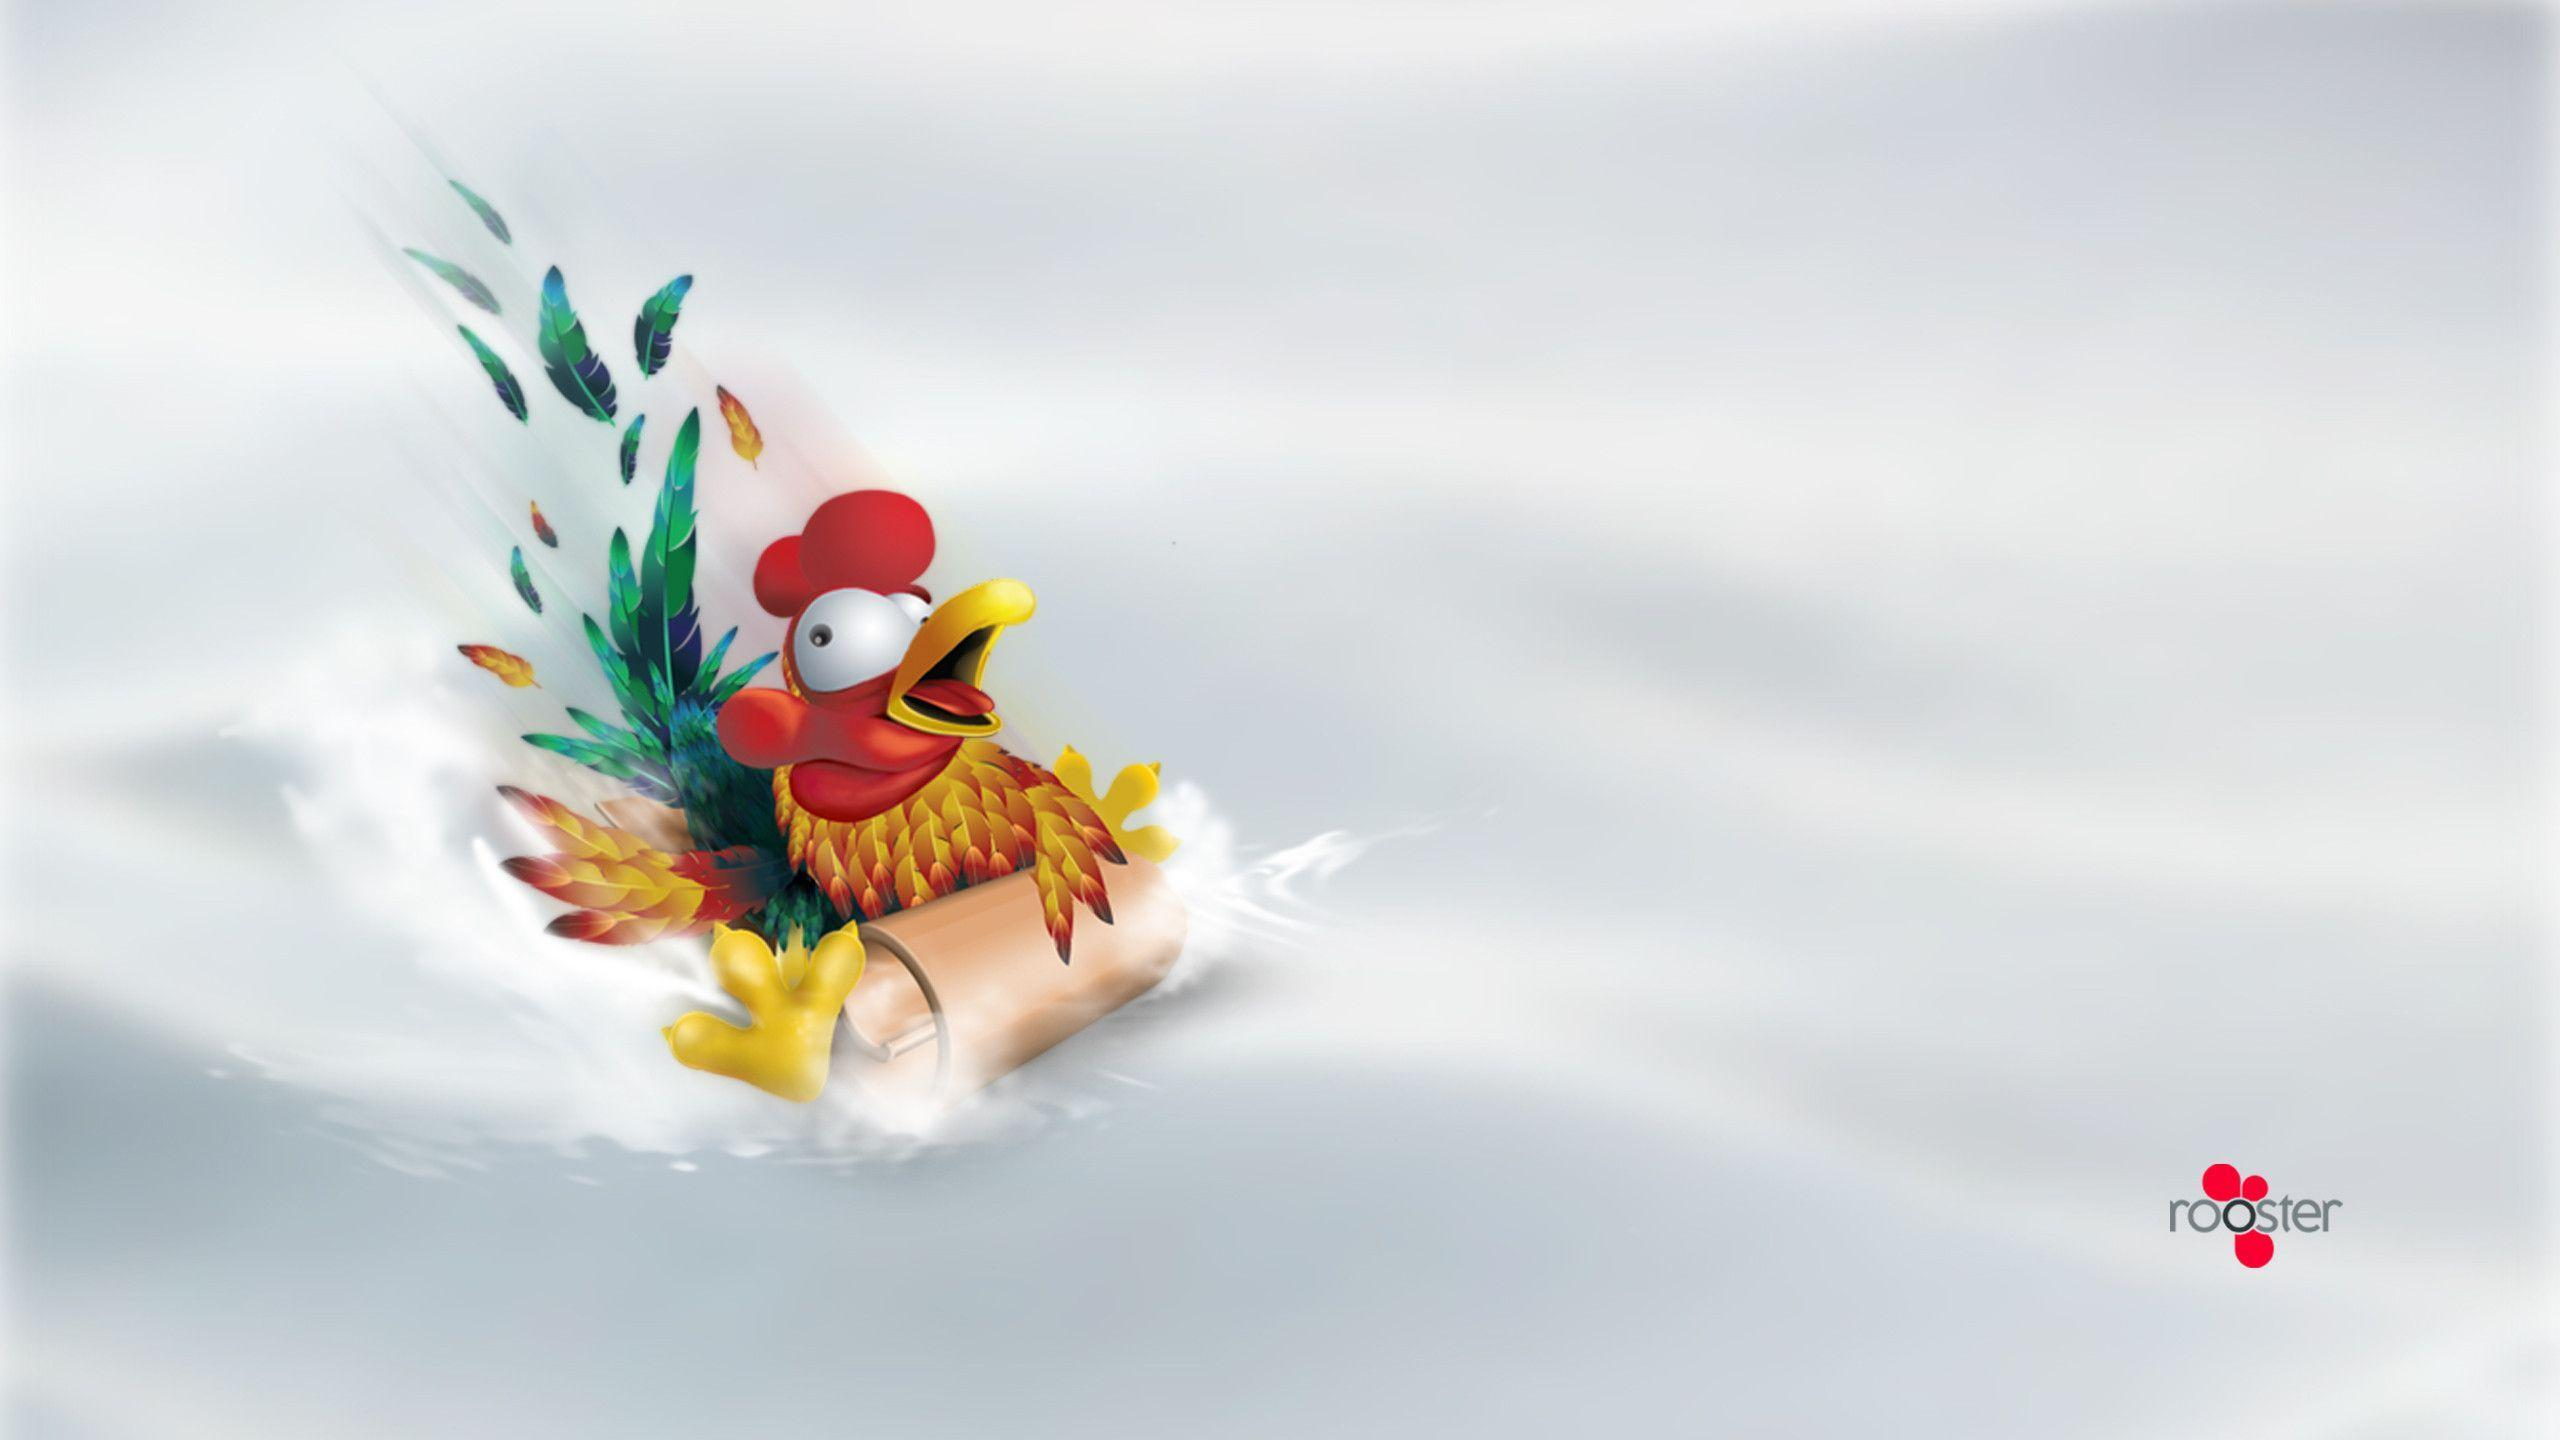 Rooster Wallpapers - Wallpaper Cave